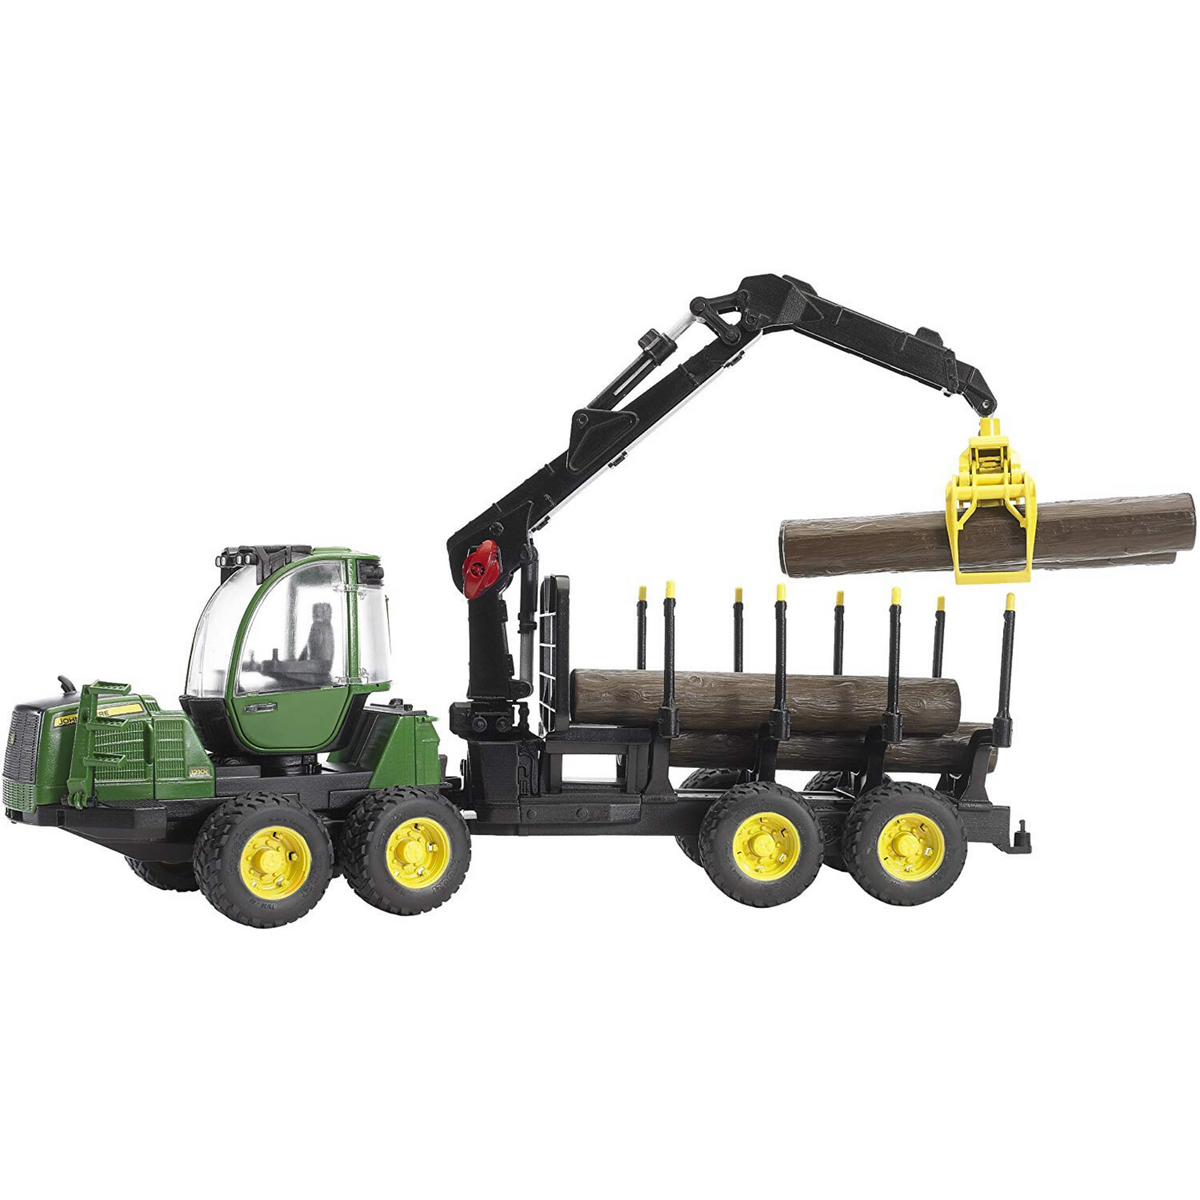 Bruder 02133 John Deere 1210E Forwarder with Grab